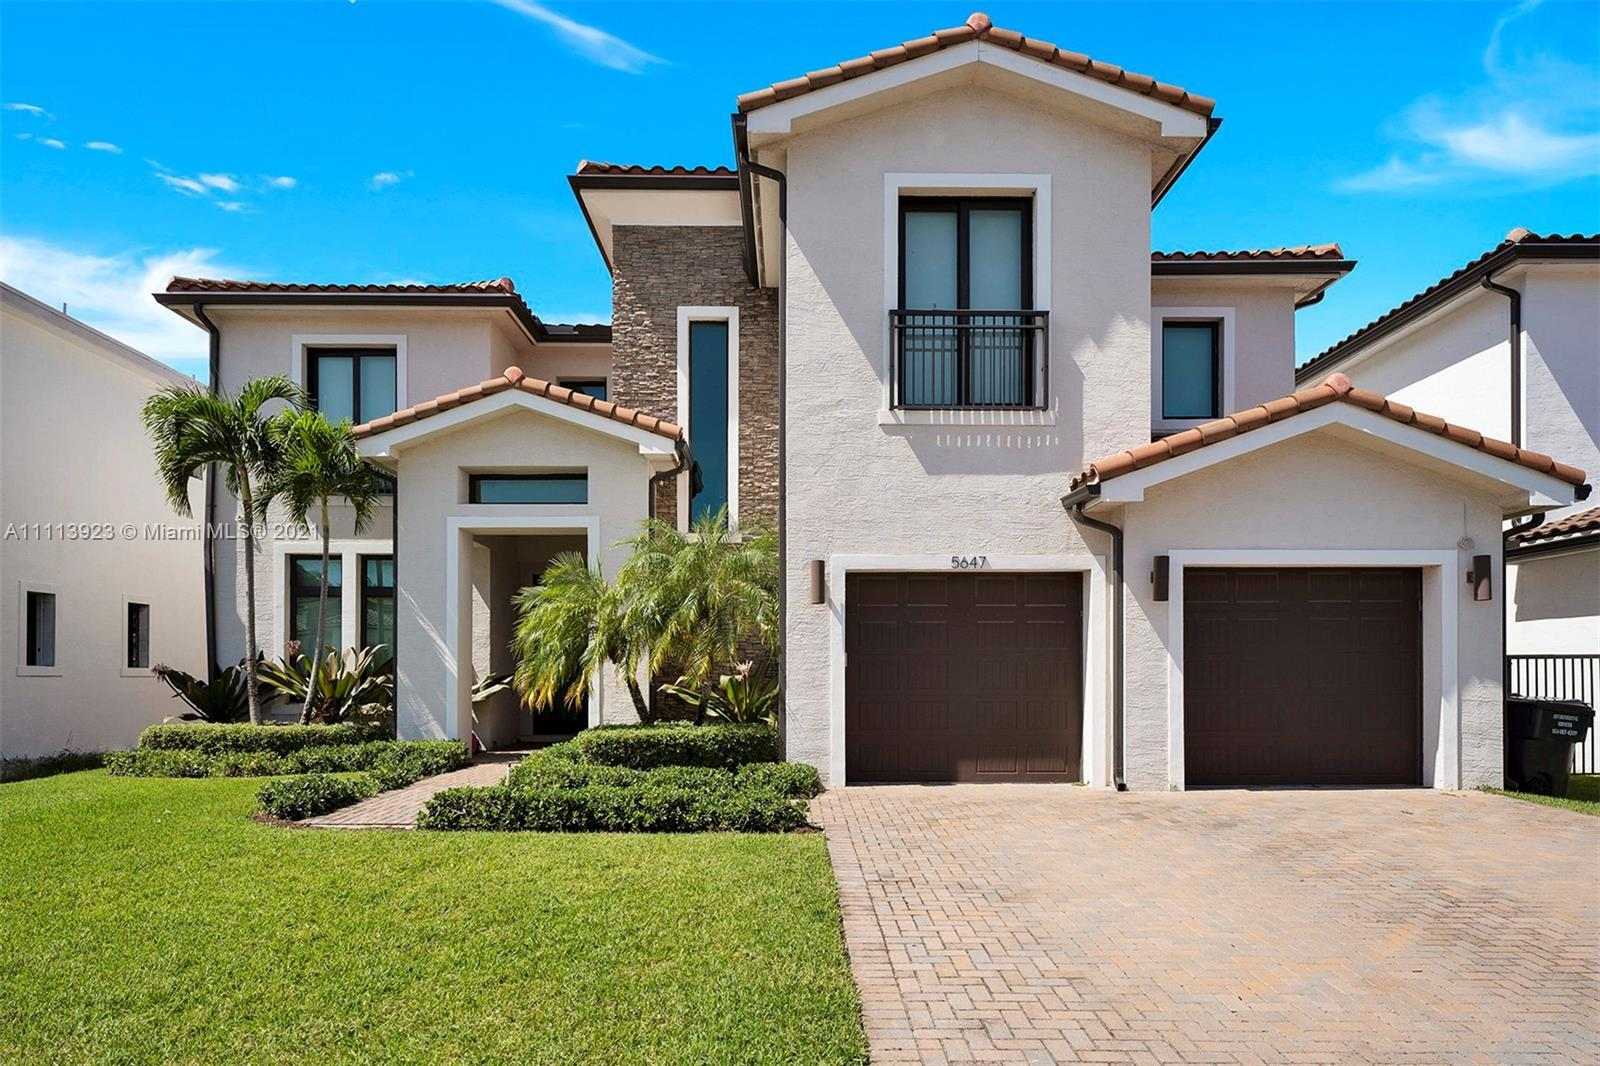 Miami Riches presents amazing custom Brand New Home at the Preserve at Emerald Hills, Hollywood. Thi